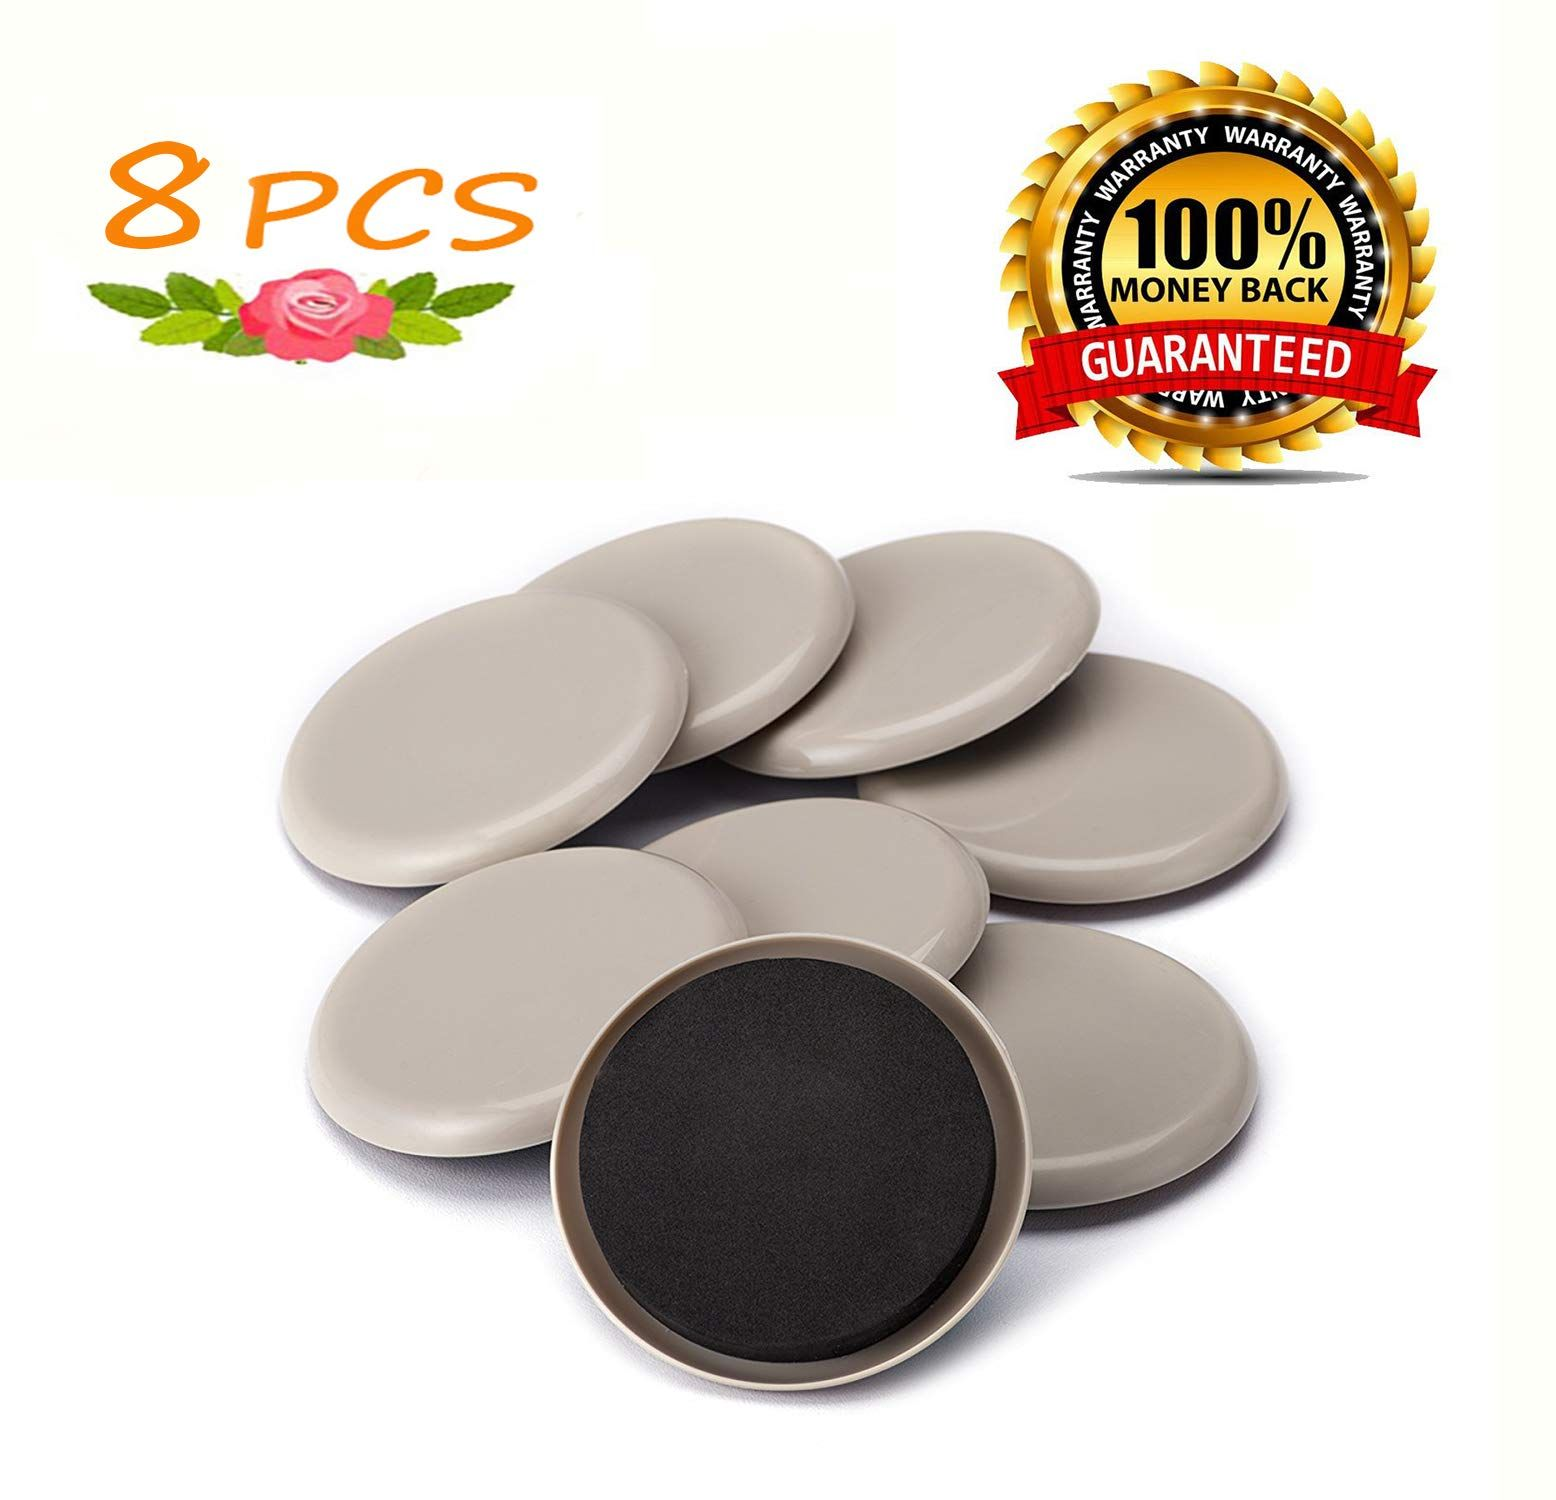 Furniture Sliders For Carpet 8 Pack 3 5 Furniture Pads Reusable Pads Heavy Furniture Easy Movers Sliders Gl In 2020 Furniture Sliders Furniture Pads Furniture Movers